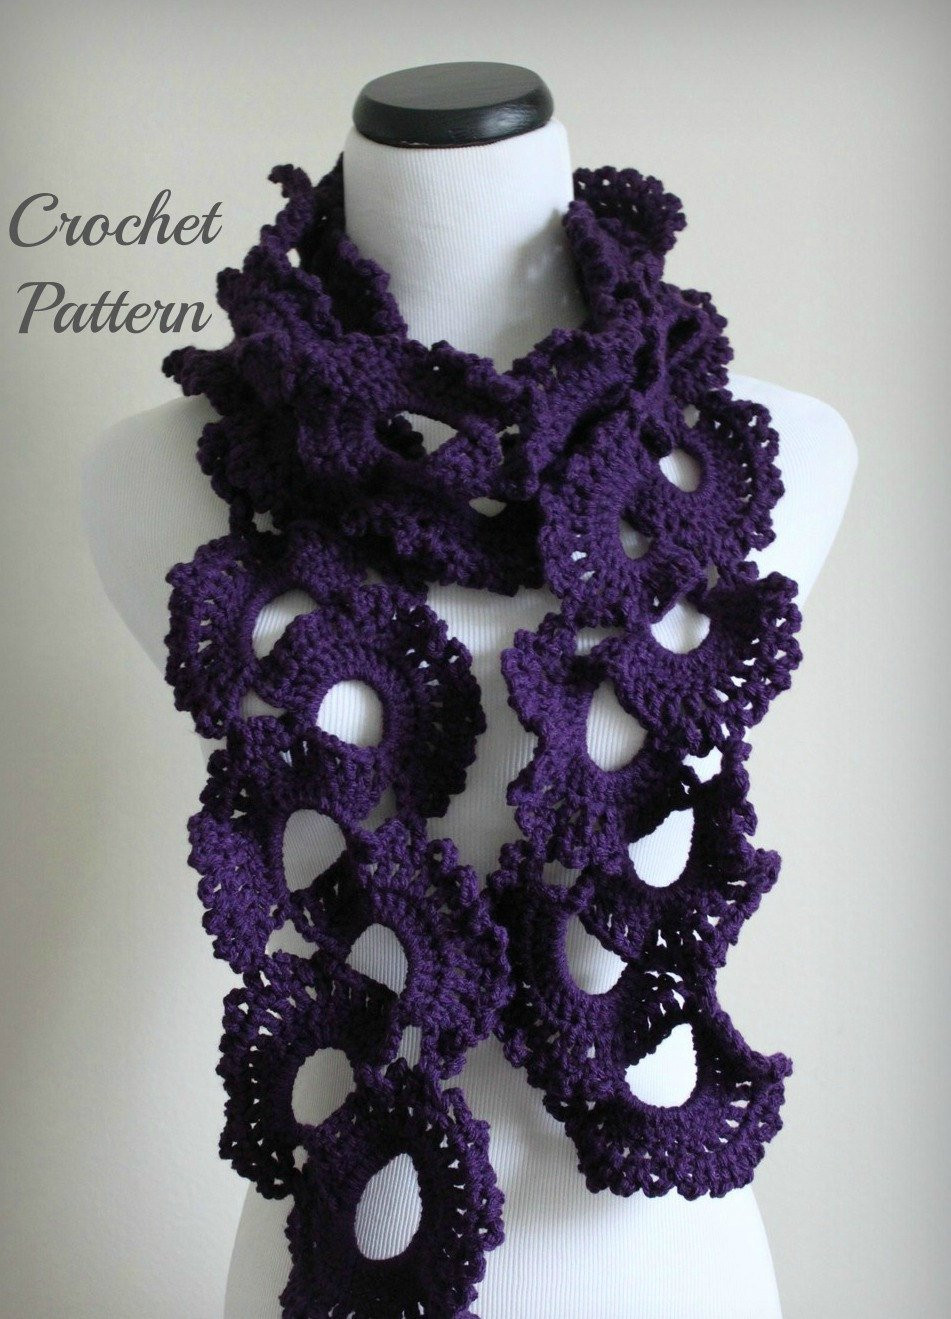 Lacy Crochet Scarf Beautiful Crochet Pattern Queen Anne S Lace Pattern Crochet Scarf Of Perfect 44 Ideas Lacy Crochet Scarf